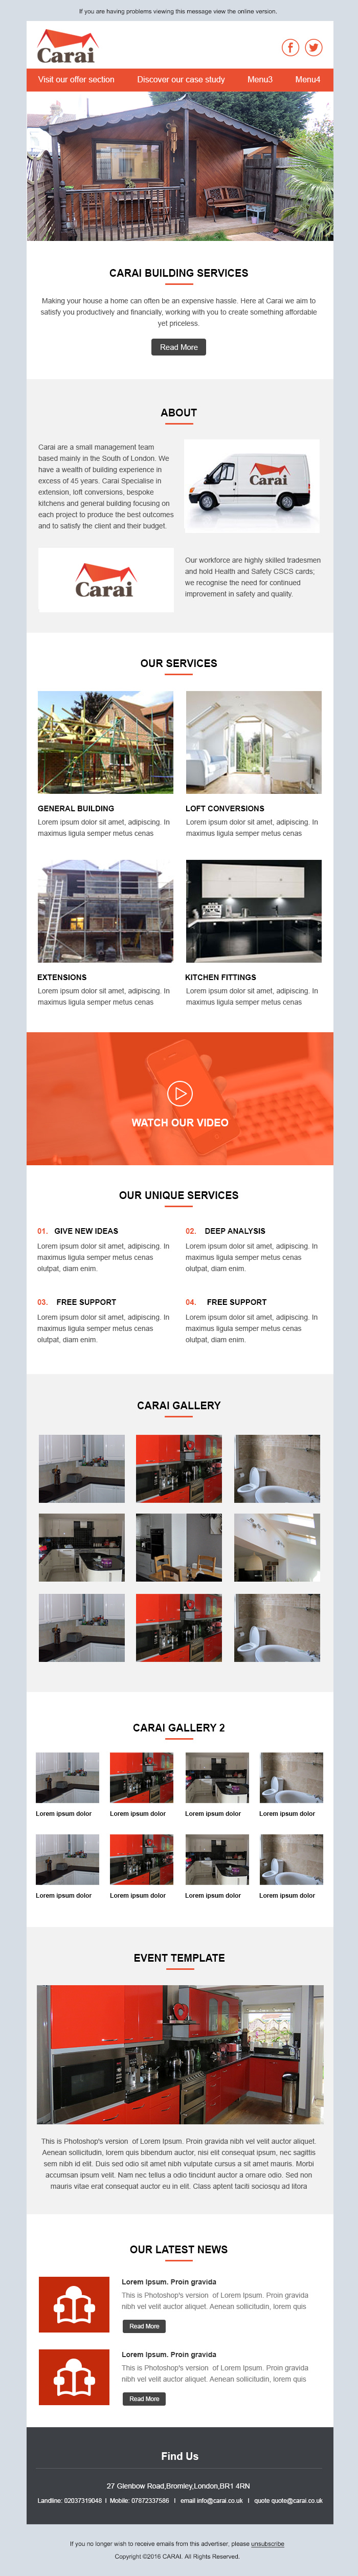 Carai website